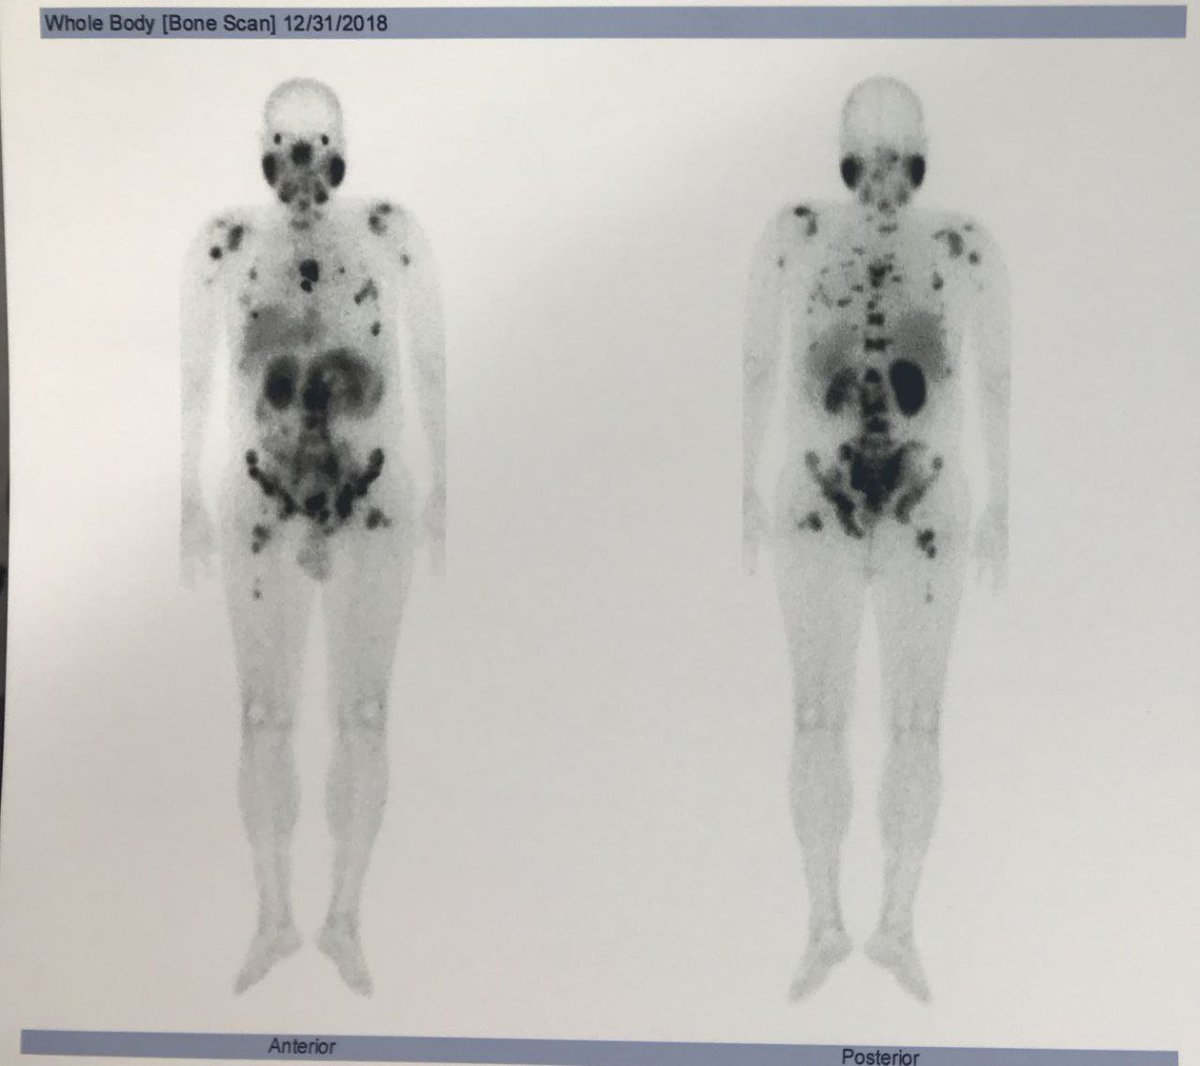 For the first time in the world, #HYNIC_PSMA #radiopharmaceutical_kit was manufactured by #Parsisotope for diagnosis of #prostate_cancer via #spect/CT scan. This kit provides low-cost scans with high resolution.